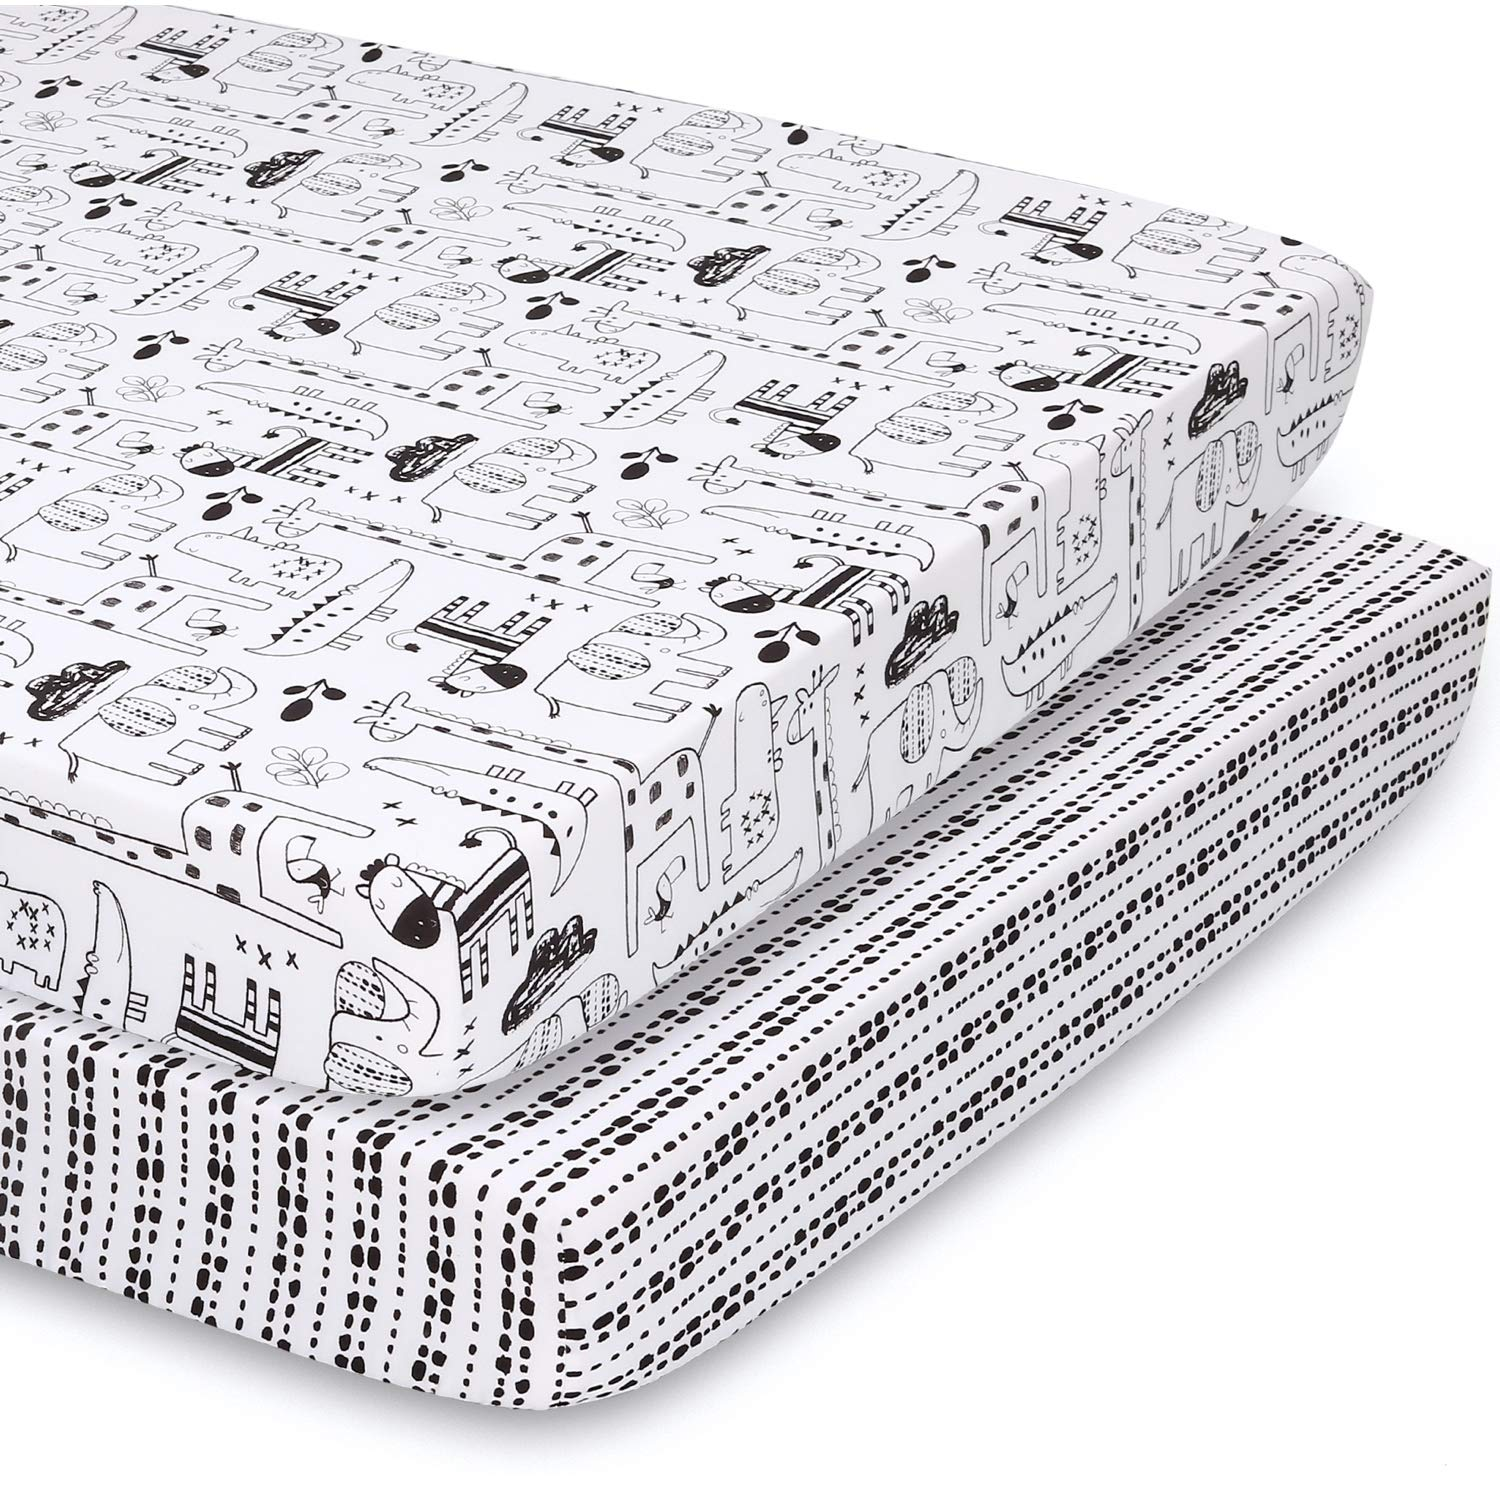 The Peanutshell fitted pack n play, Playard, mini crib sheets   2 pack set   zoo animals and tribal stripes